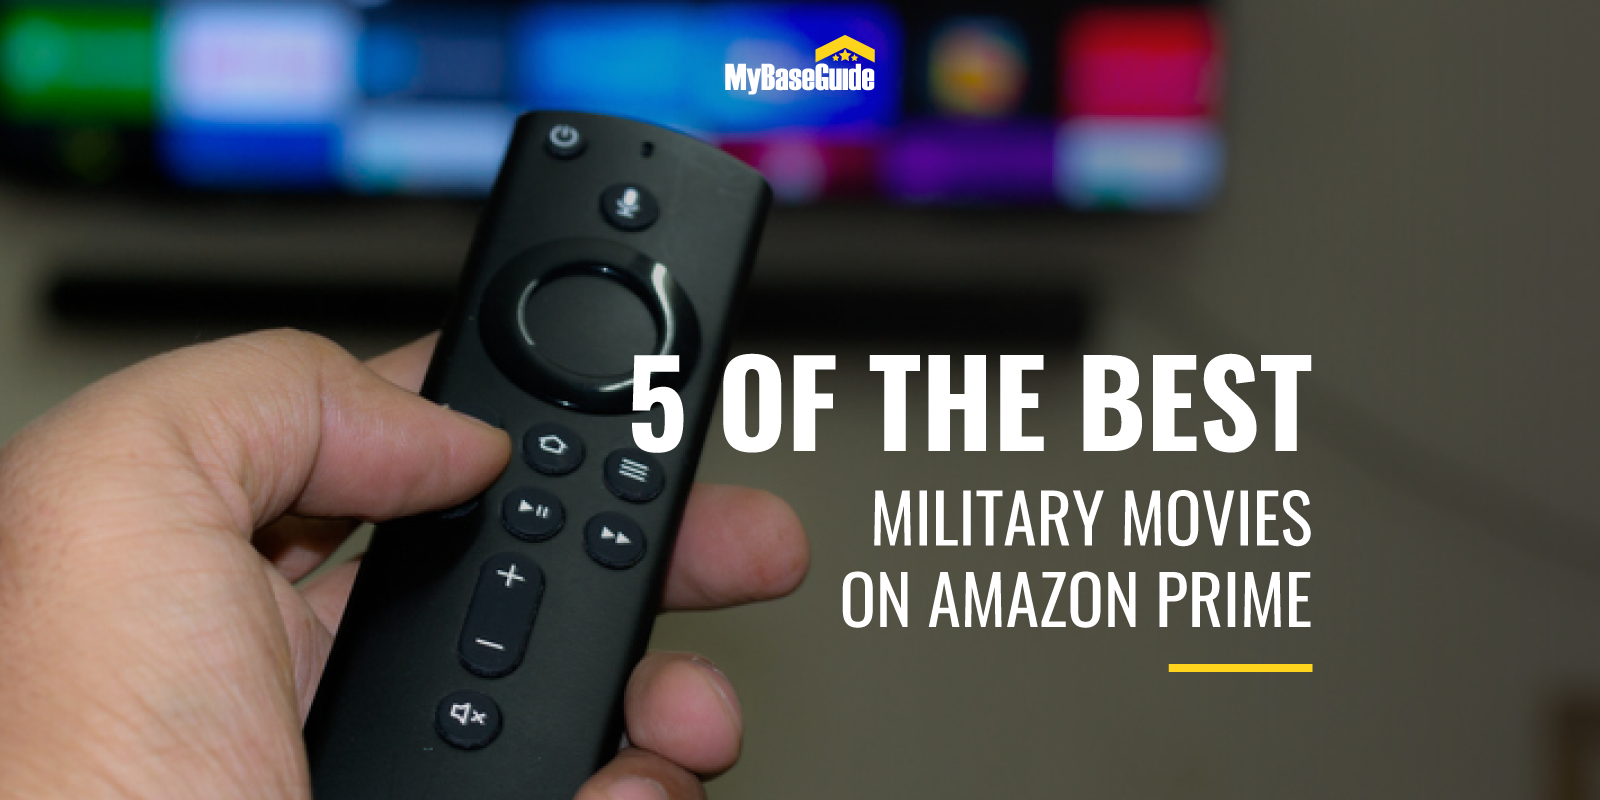 5 of the Best Military Movies on Amazon Prime